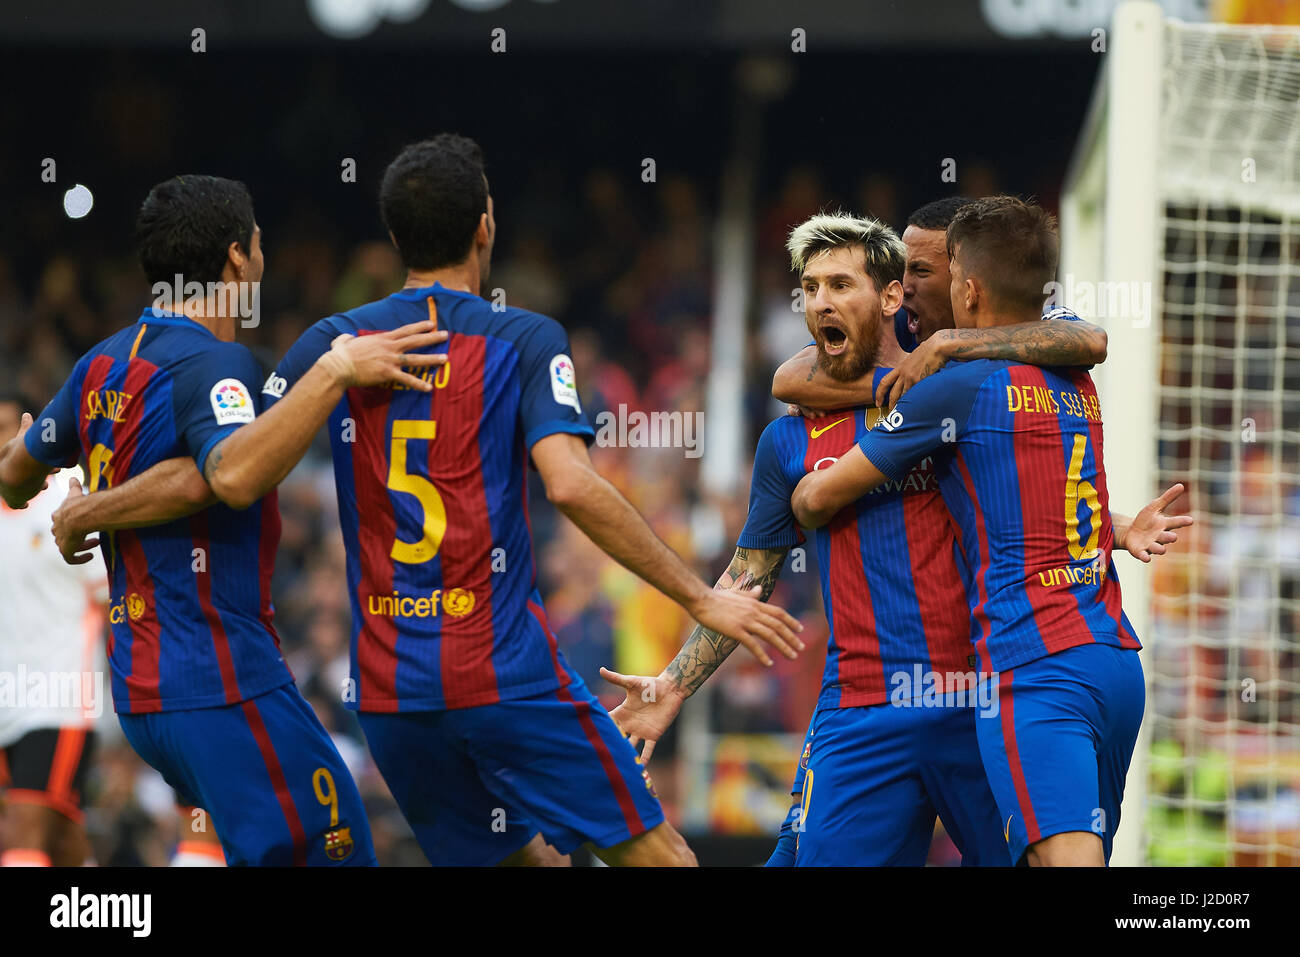 FC Barcelona players celebrates their goal during the La Liga match at Mestalla, Valencia Picture by Maria Jose - Stock Image